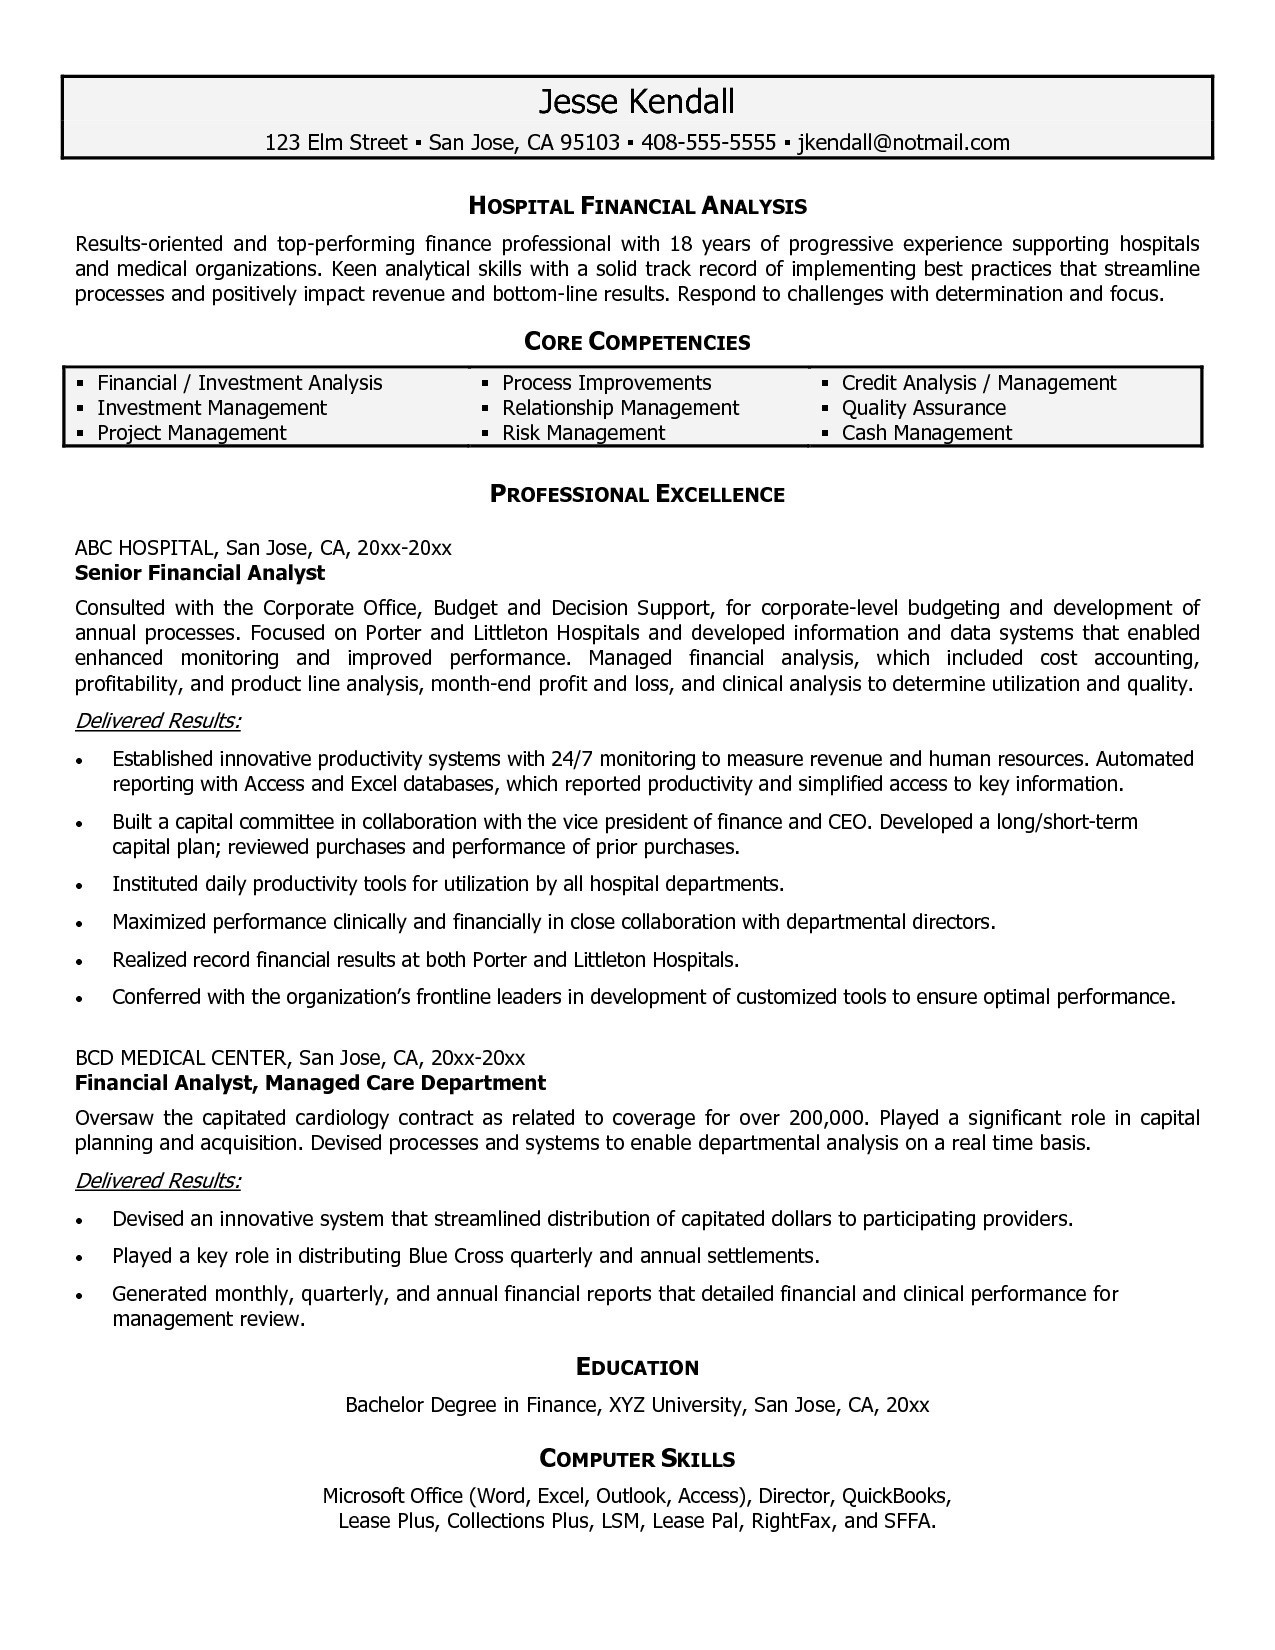 Financial Advisor Resume Template - Entry Level Financial Advisor Resume Reference Fresh Resume Template